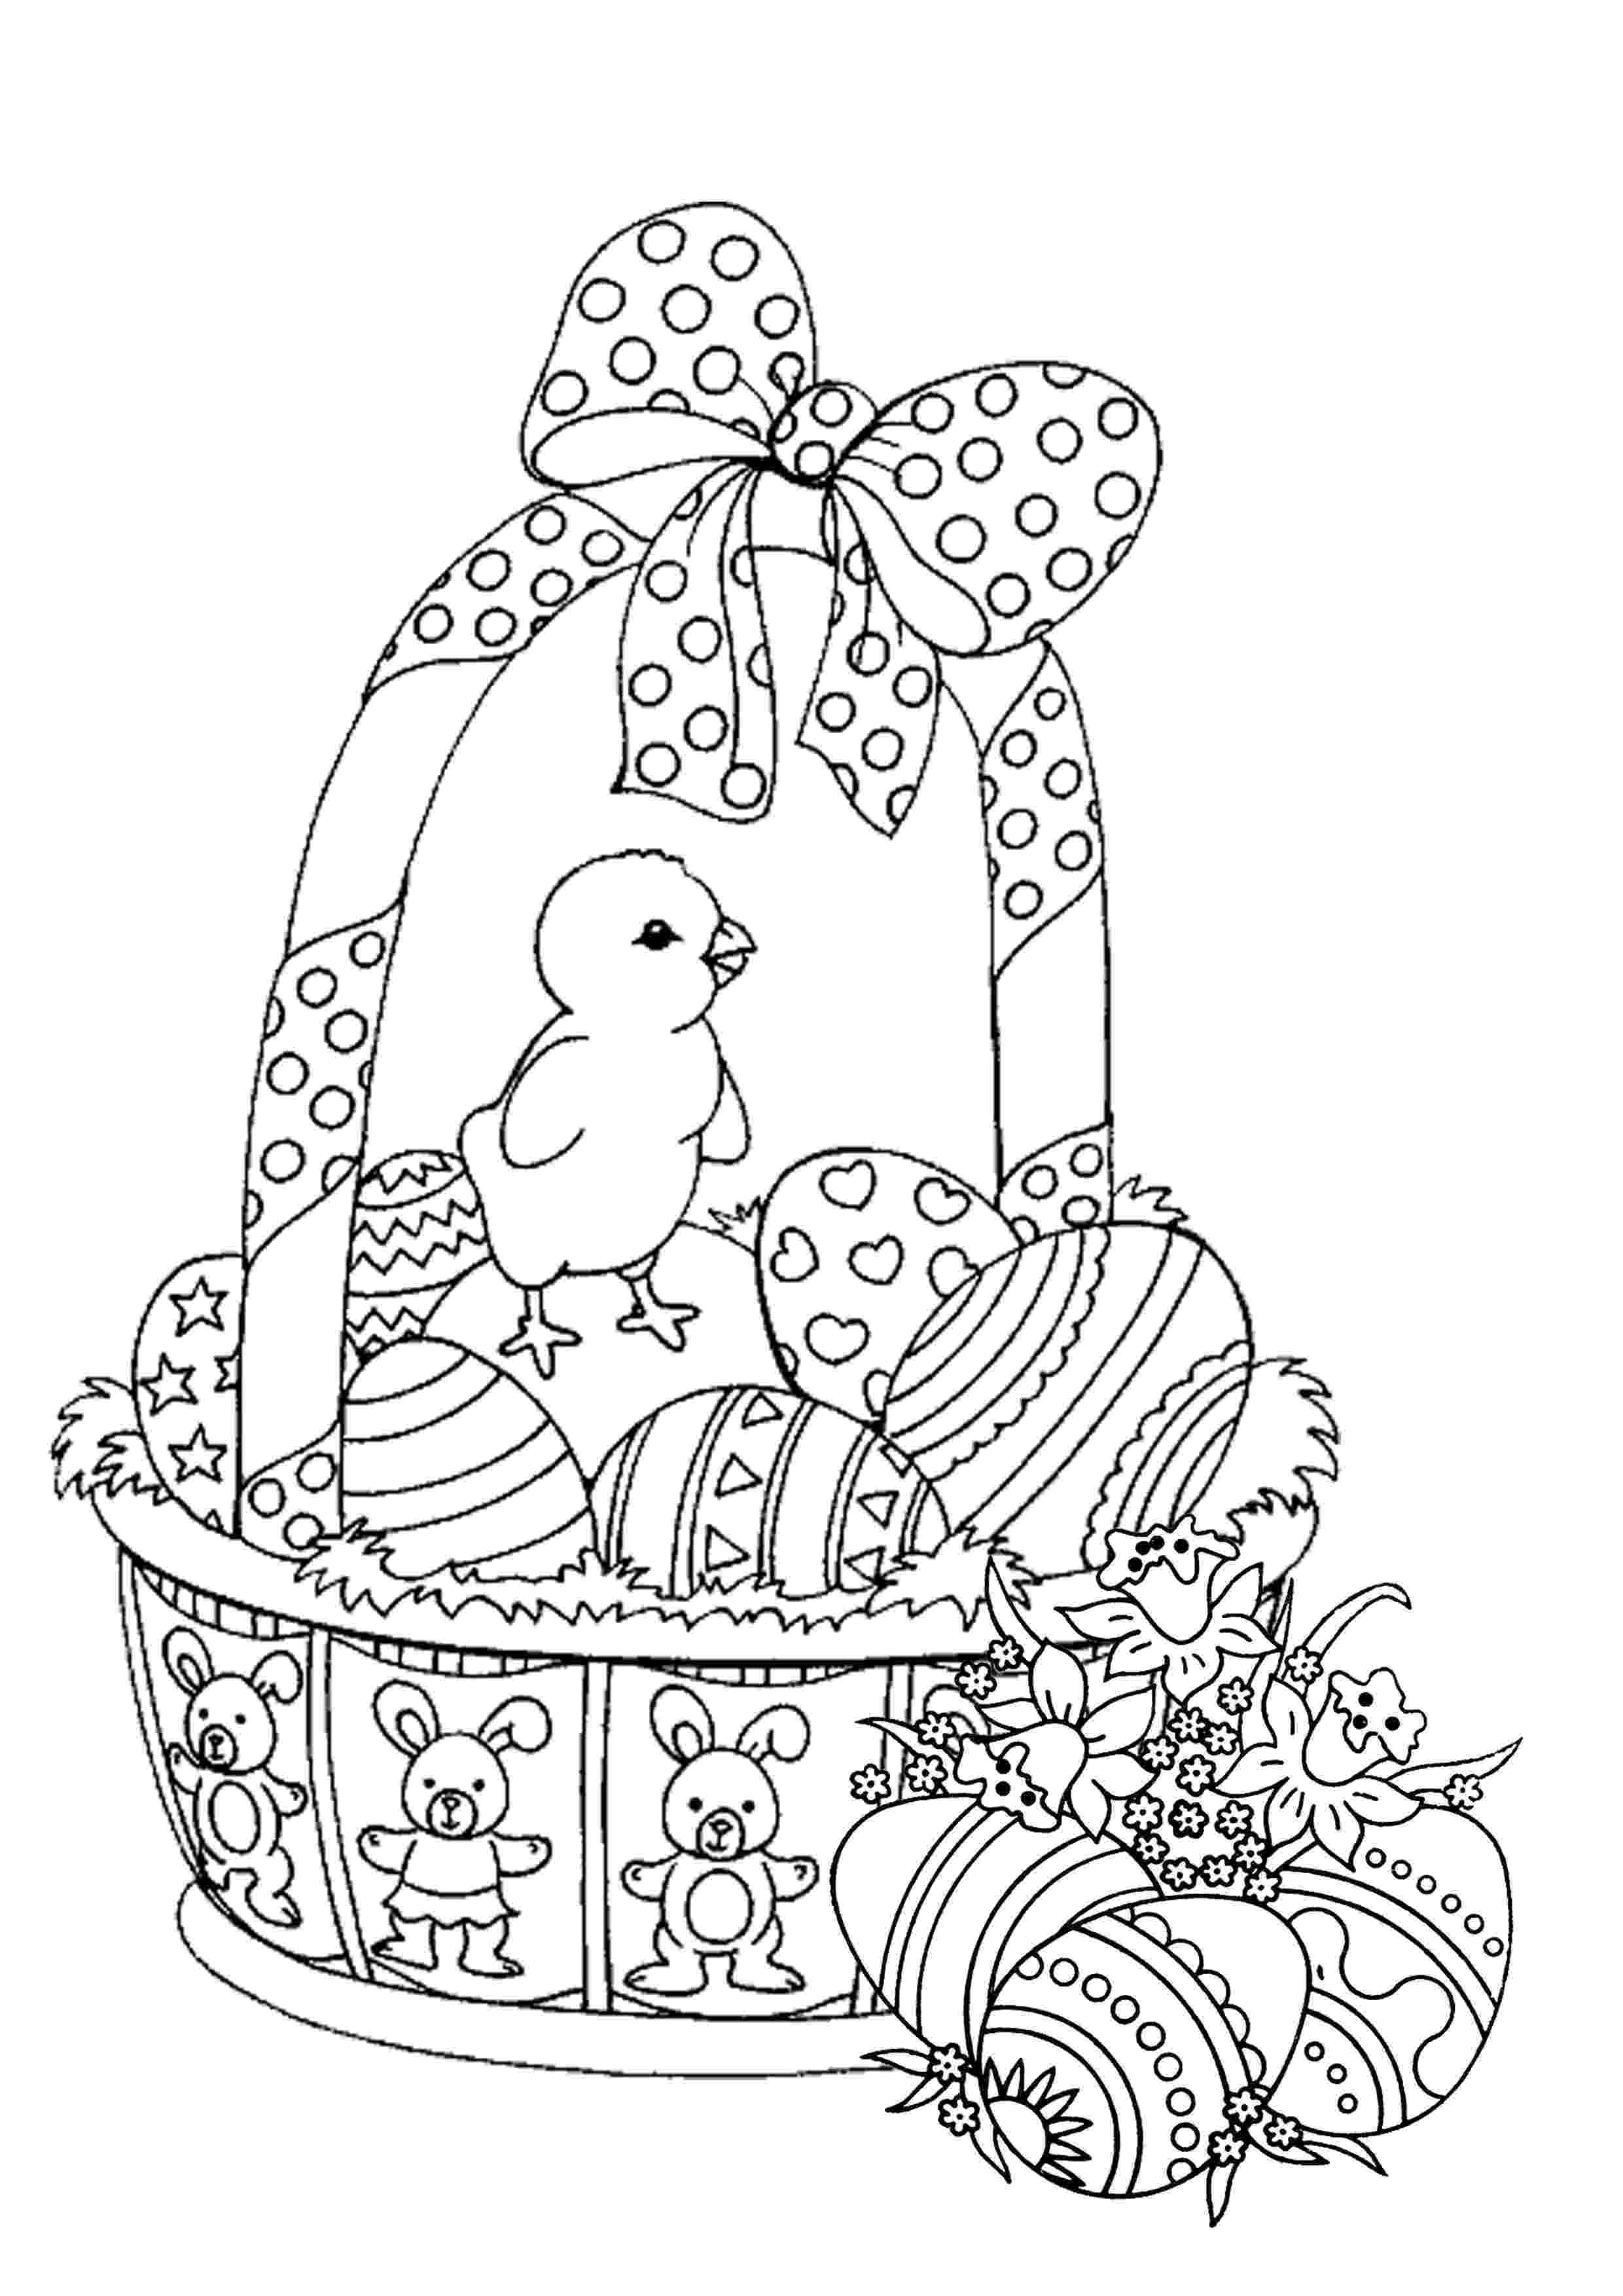 printable colouring sheets for easter hello kitty happy easter coloring page free printable easter sheets colouring for printable